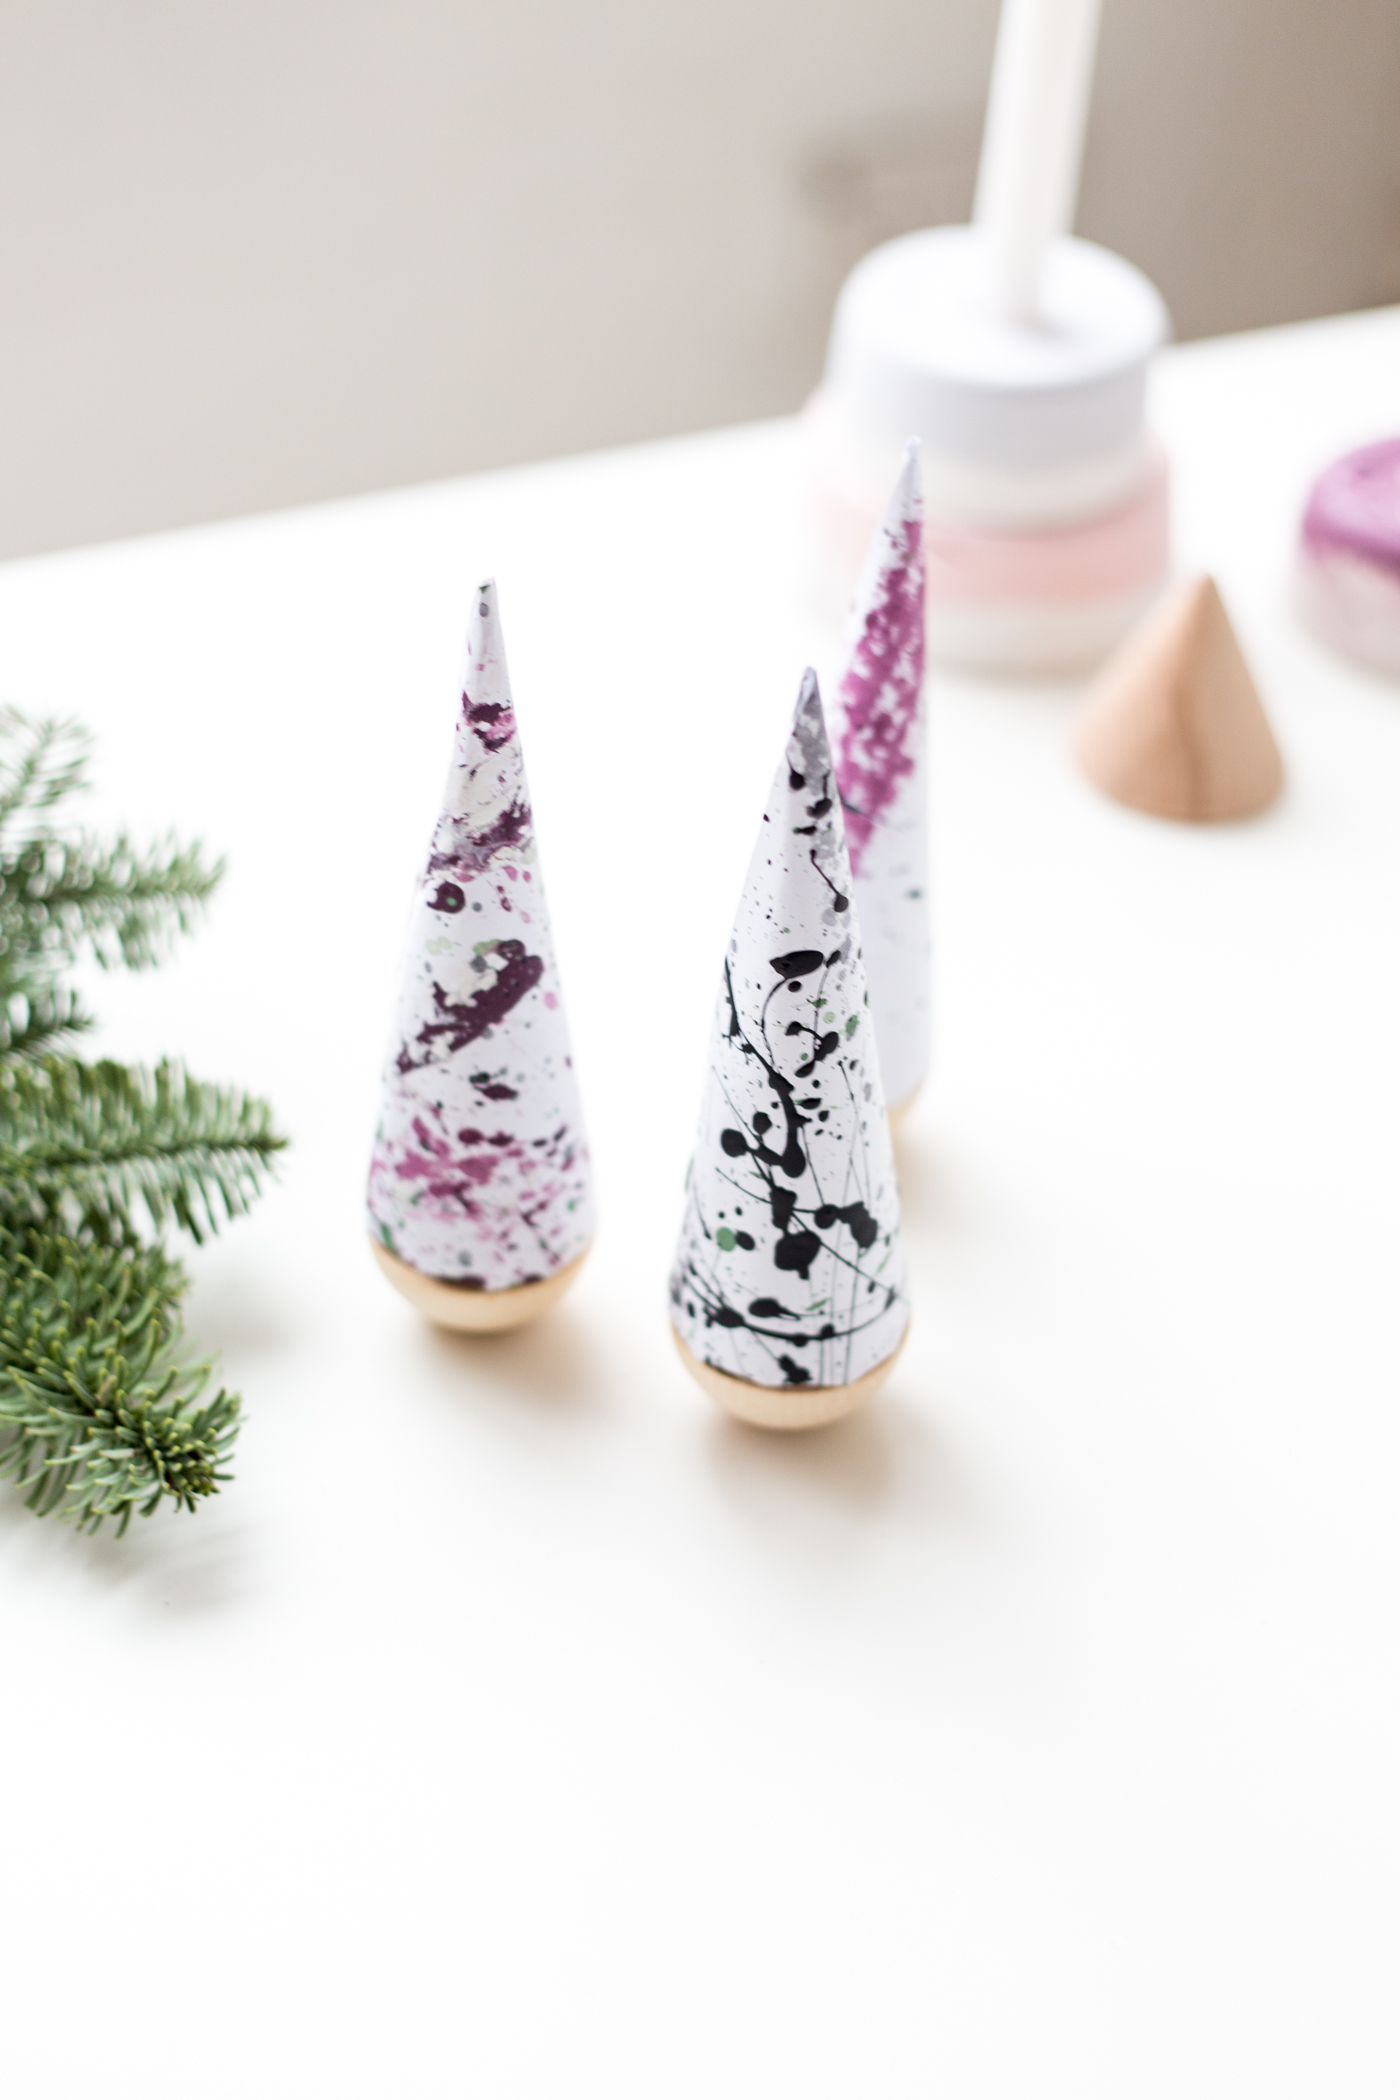 DIY Paint Splattered Christmas Trees